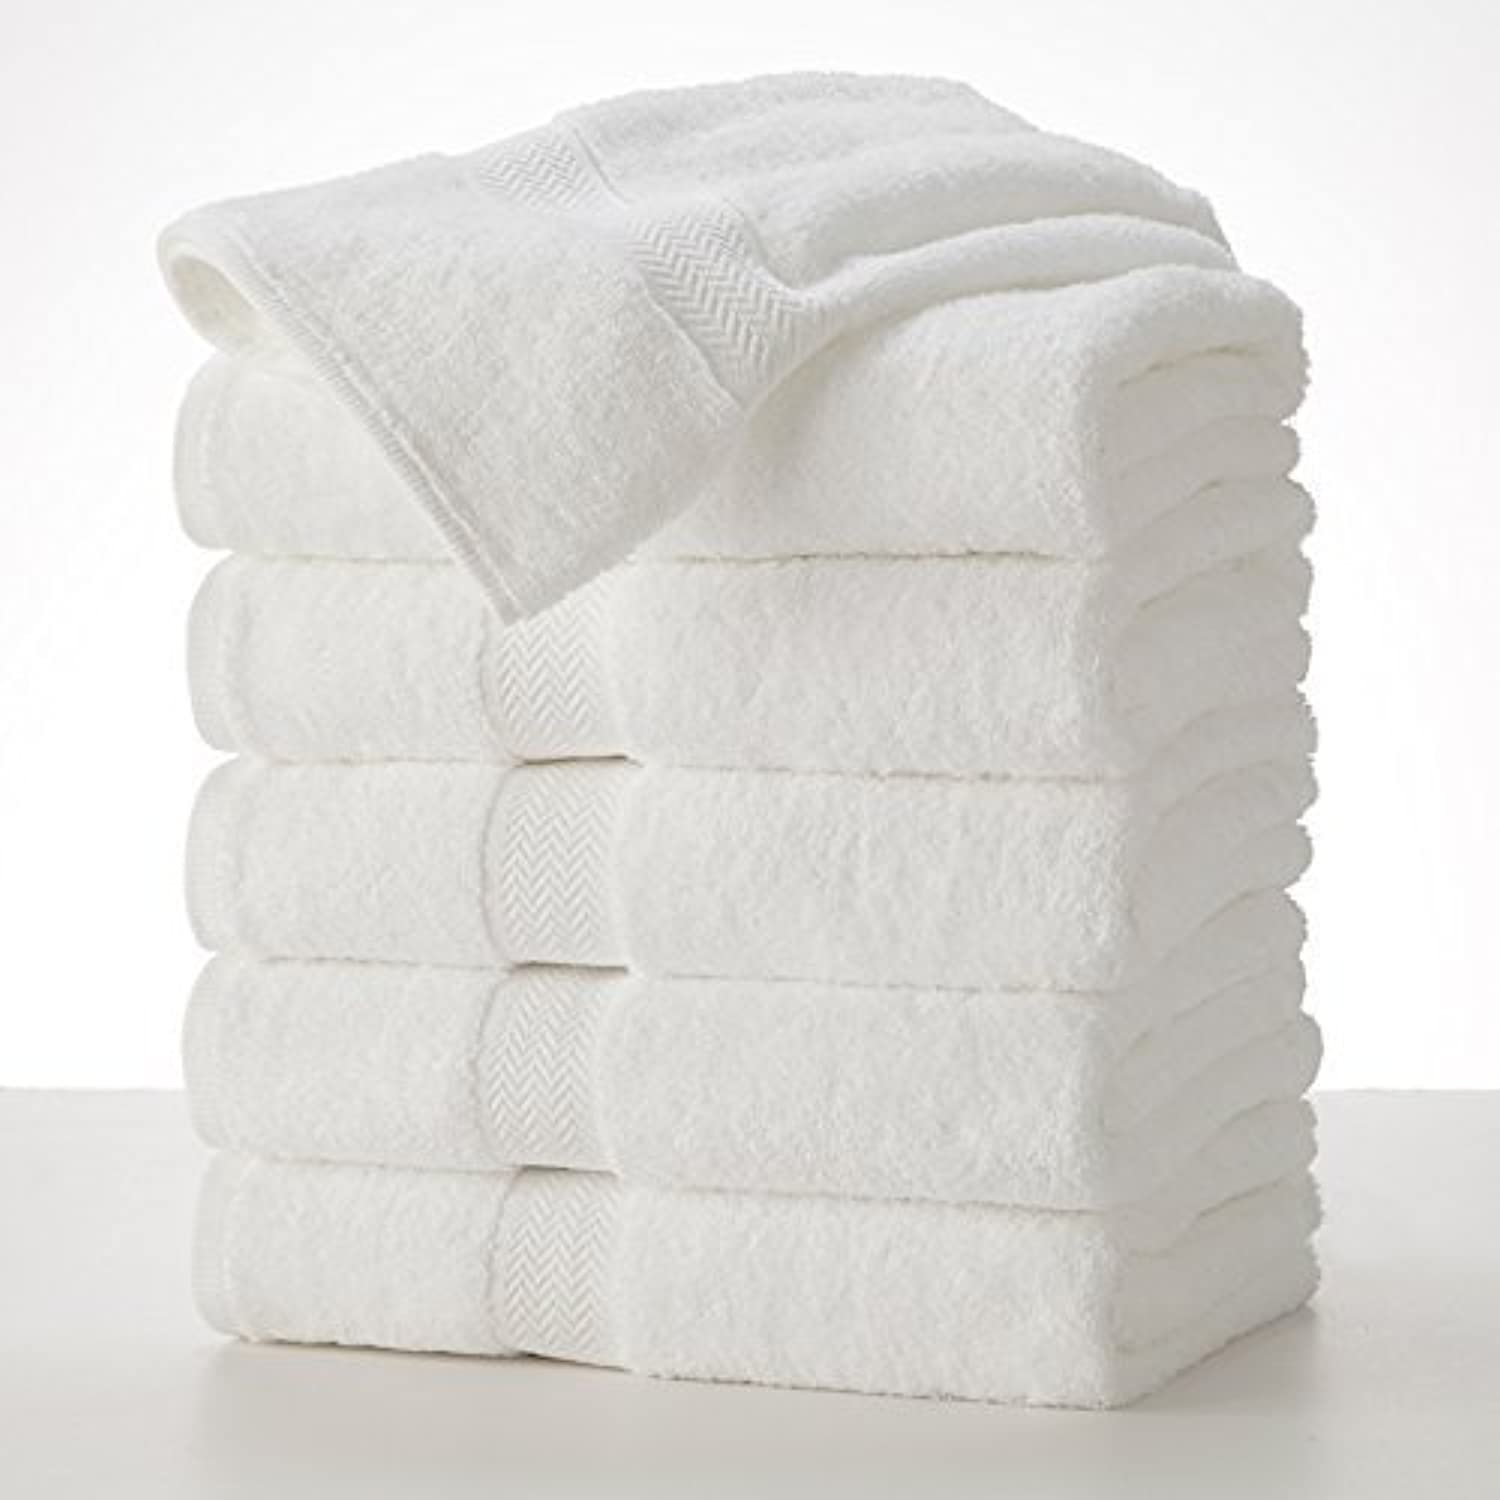 Grand D'Or (Grandeur) Toilet Toiletries Bath Towel, Packs